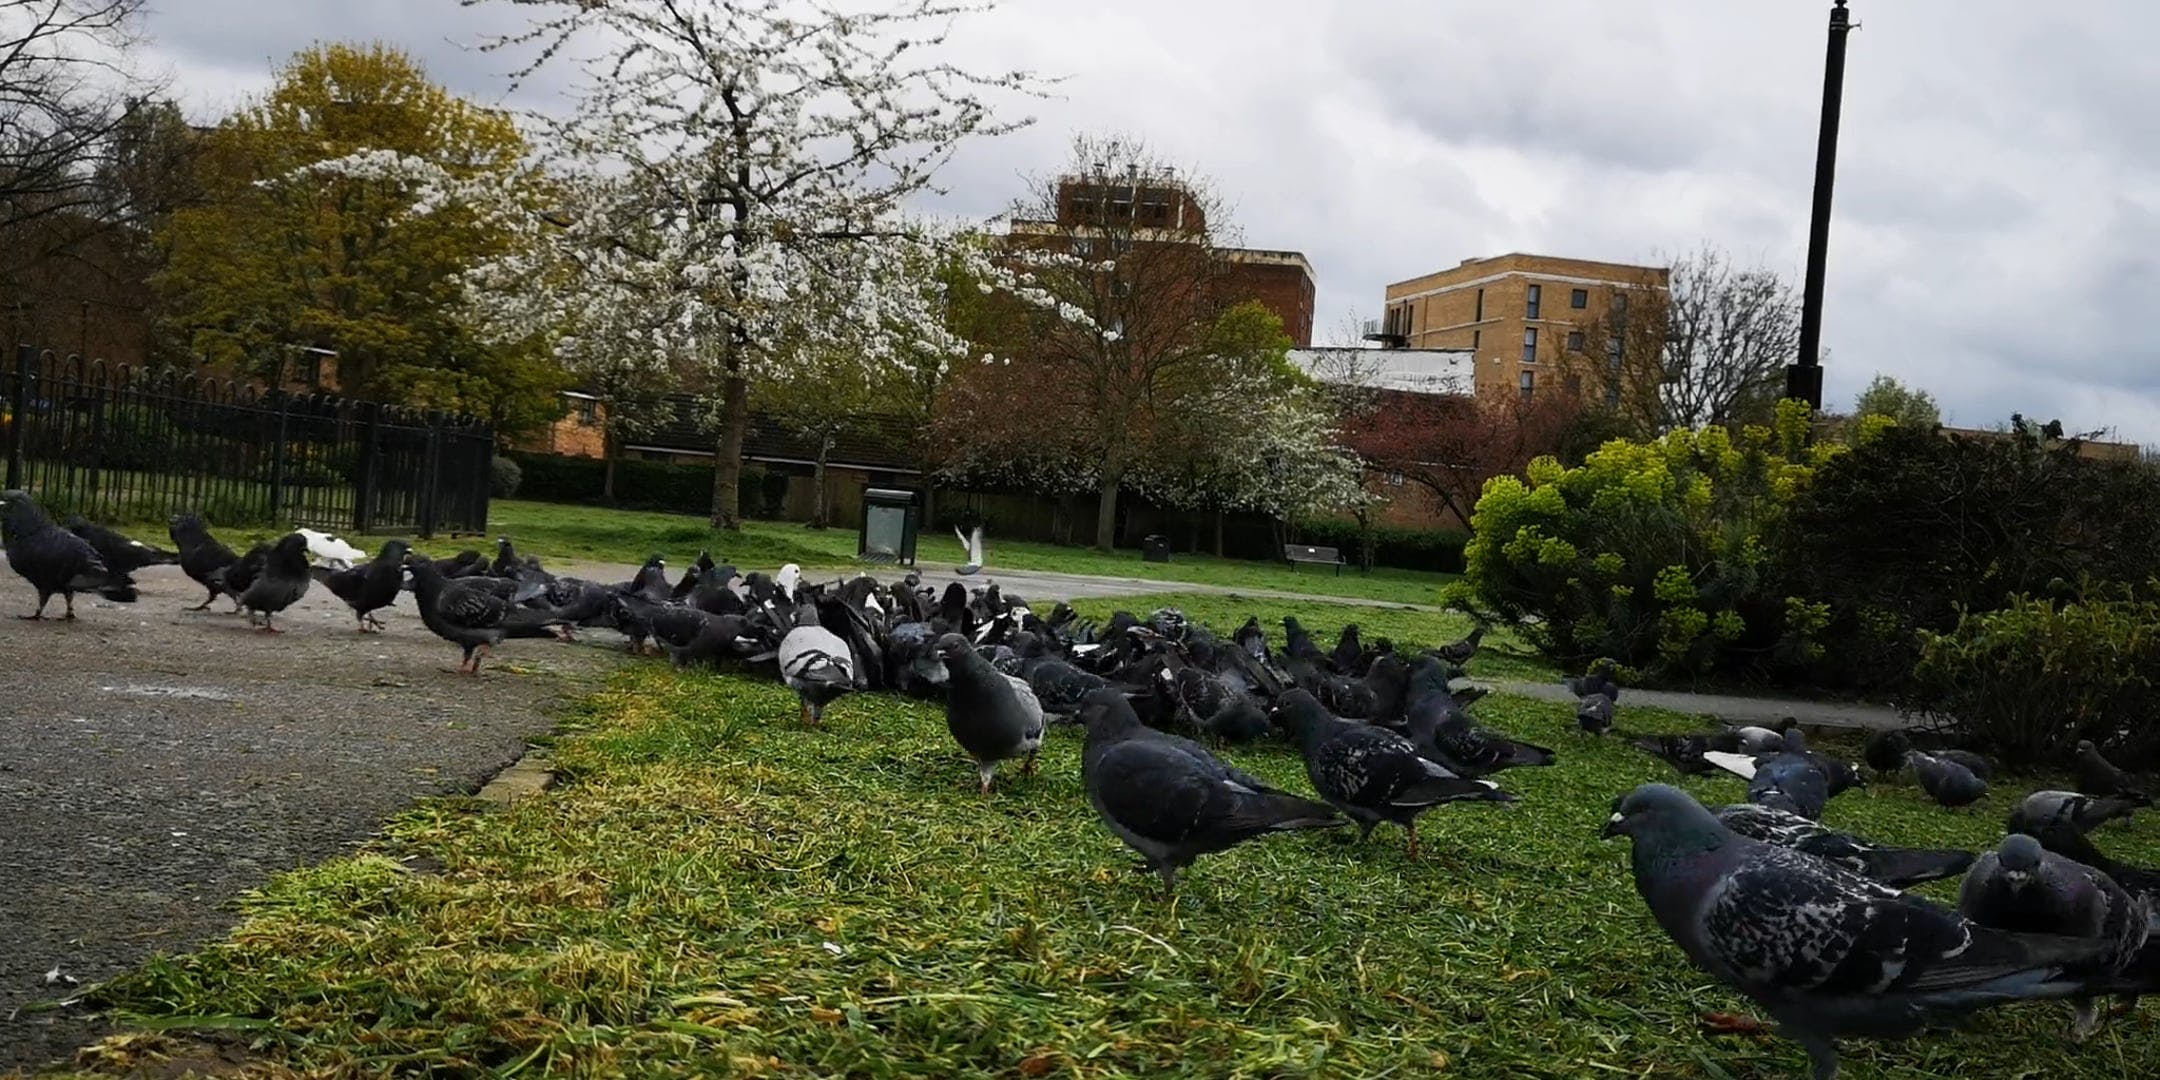 Flock Of Pigeons Feeding On Grass